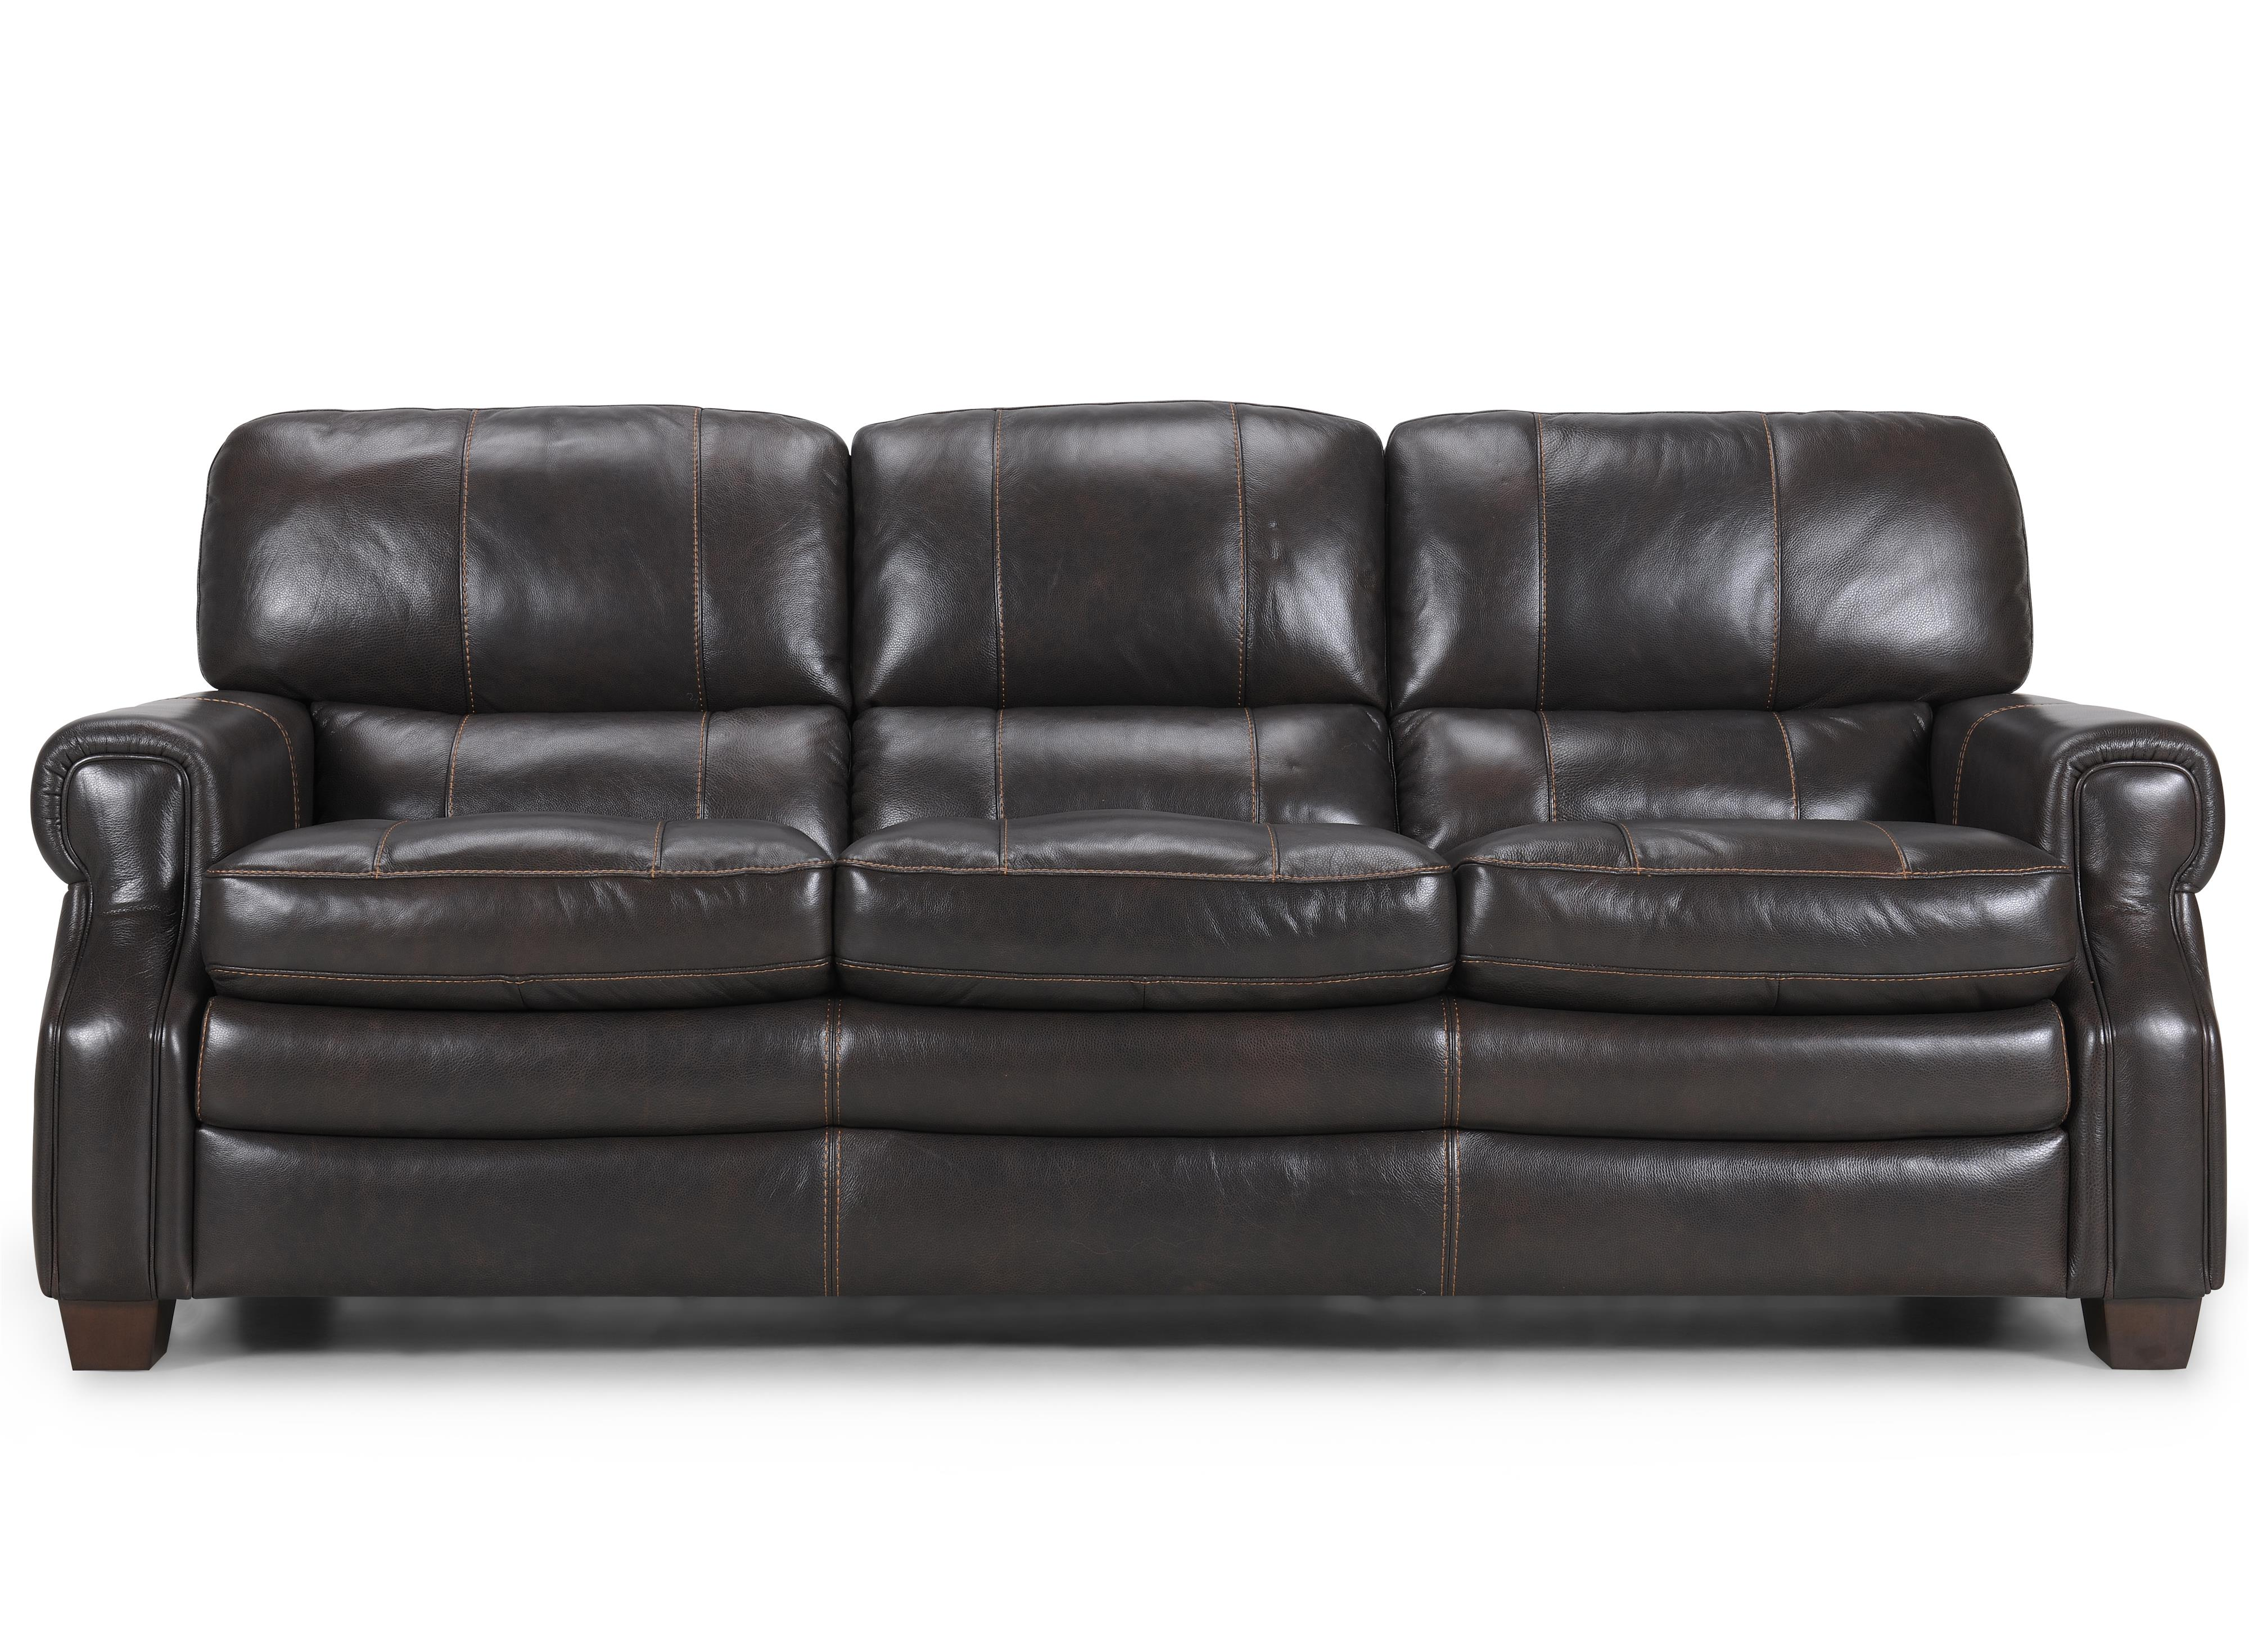 3633 Sofa by Violino at Furniture Superstore - Rochester, MN